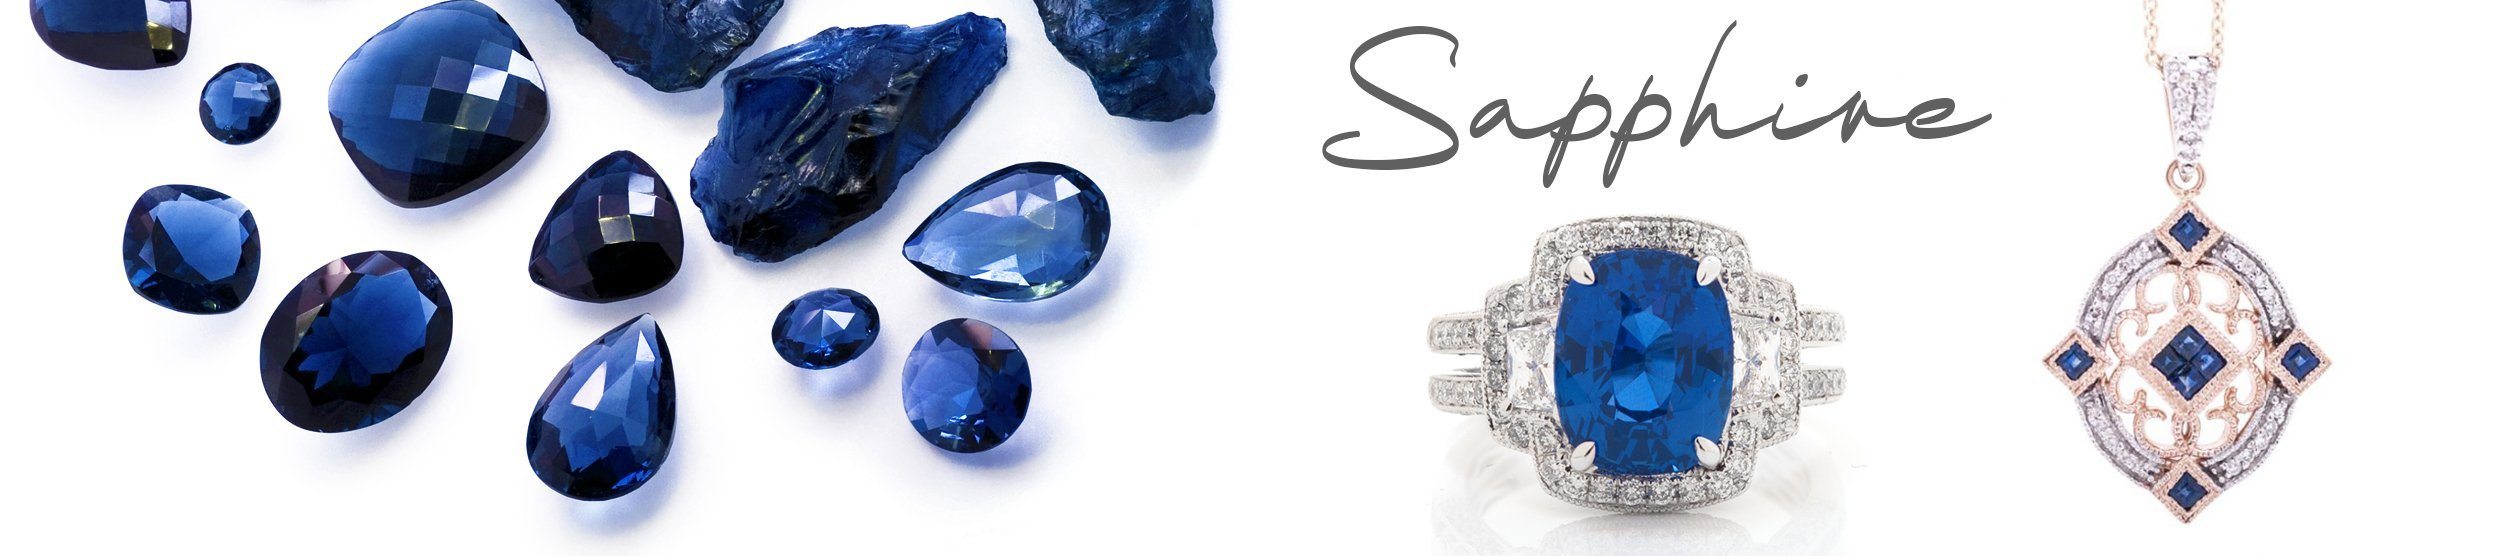 Sapphire Jewelry - By Price: Highest to Lowest